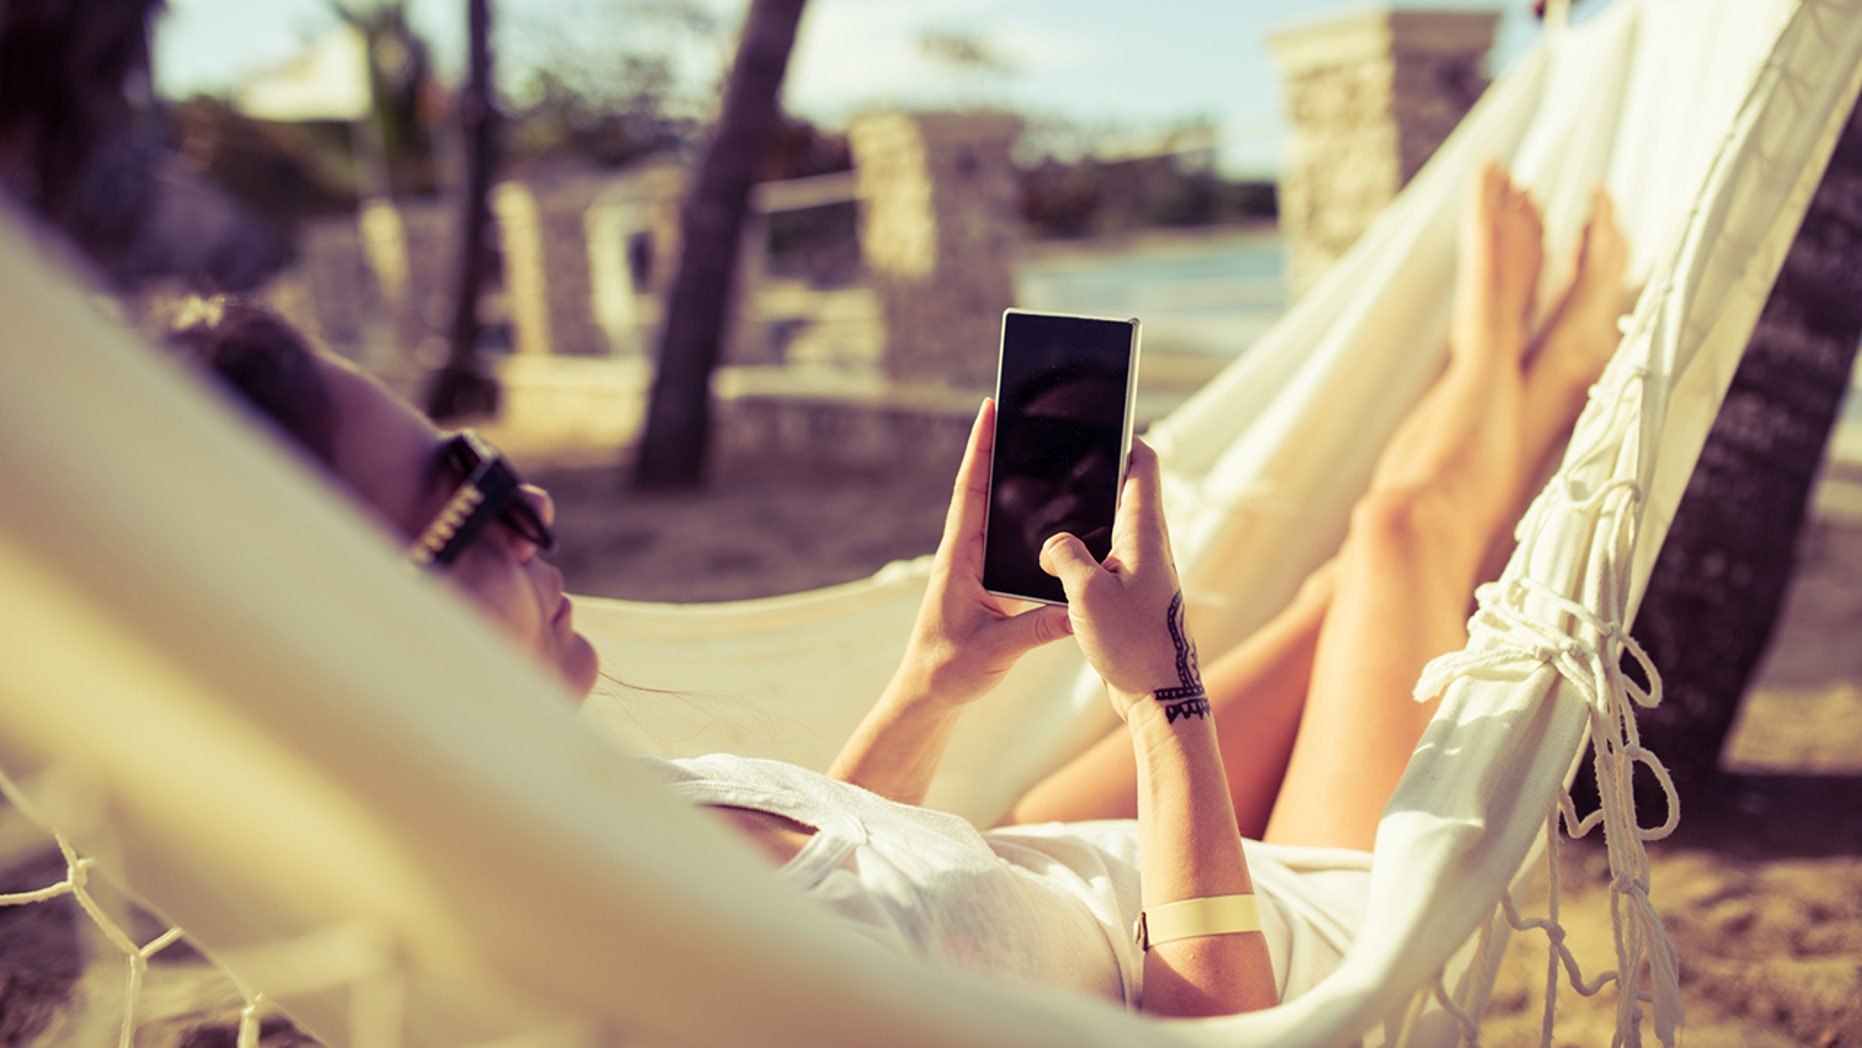 Study participants checked their phone an average of every 12 minutes while on vacation — even when there were hammocks involved!